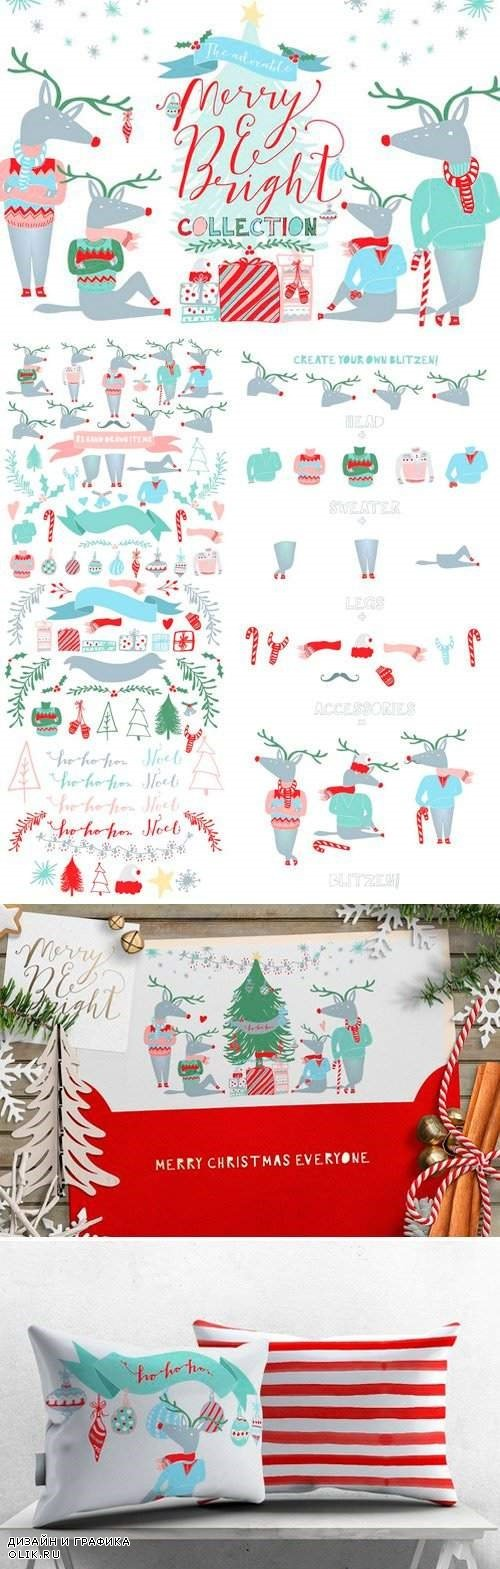 Merry and Bright Christmas Clipart - 421466